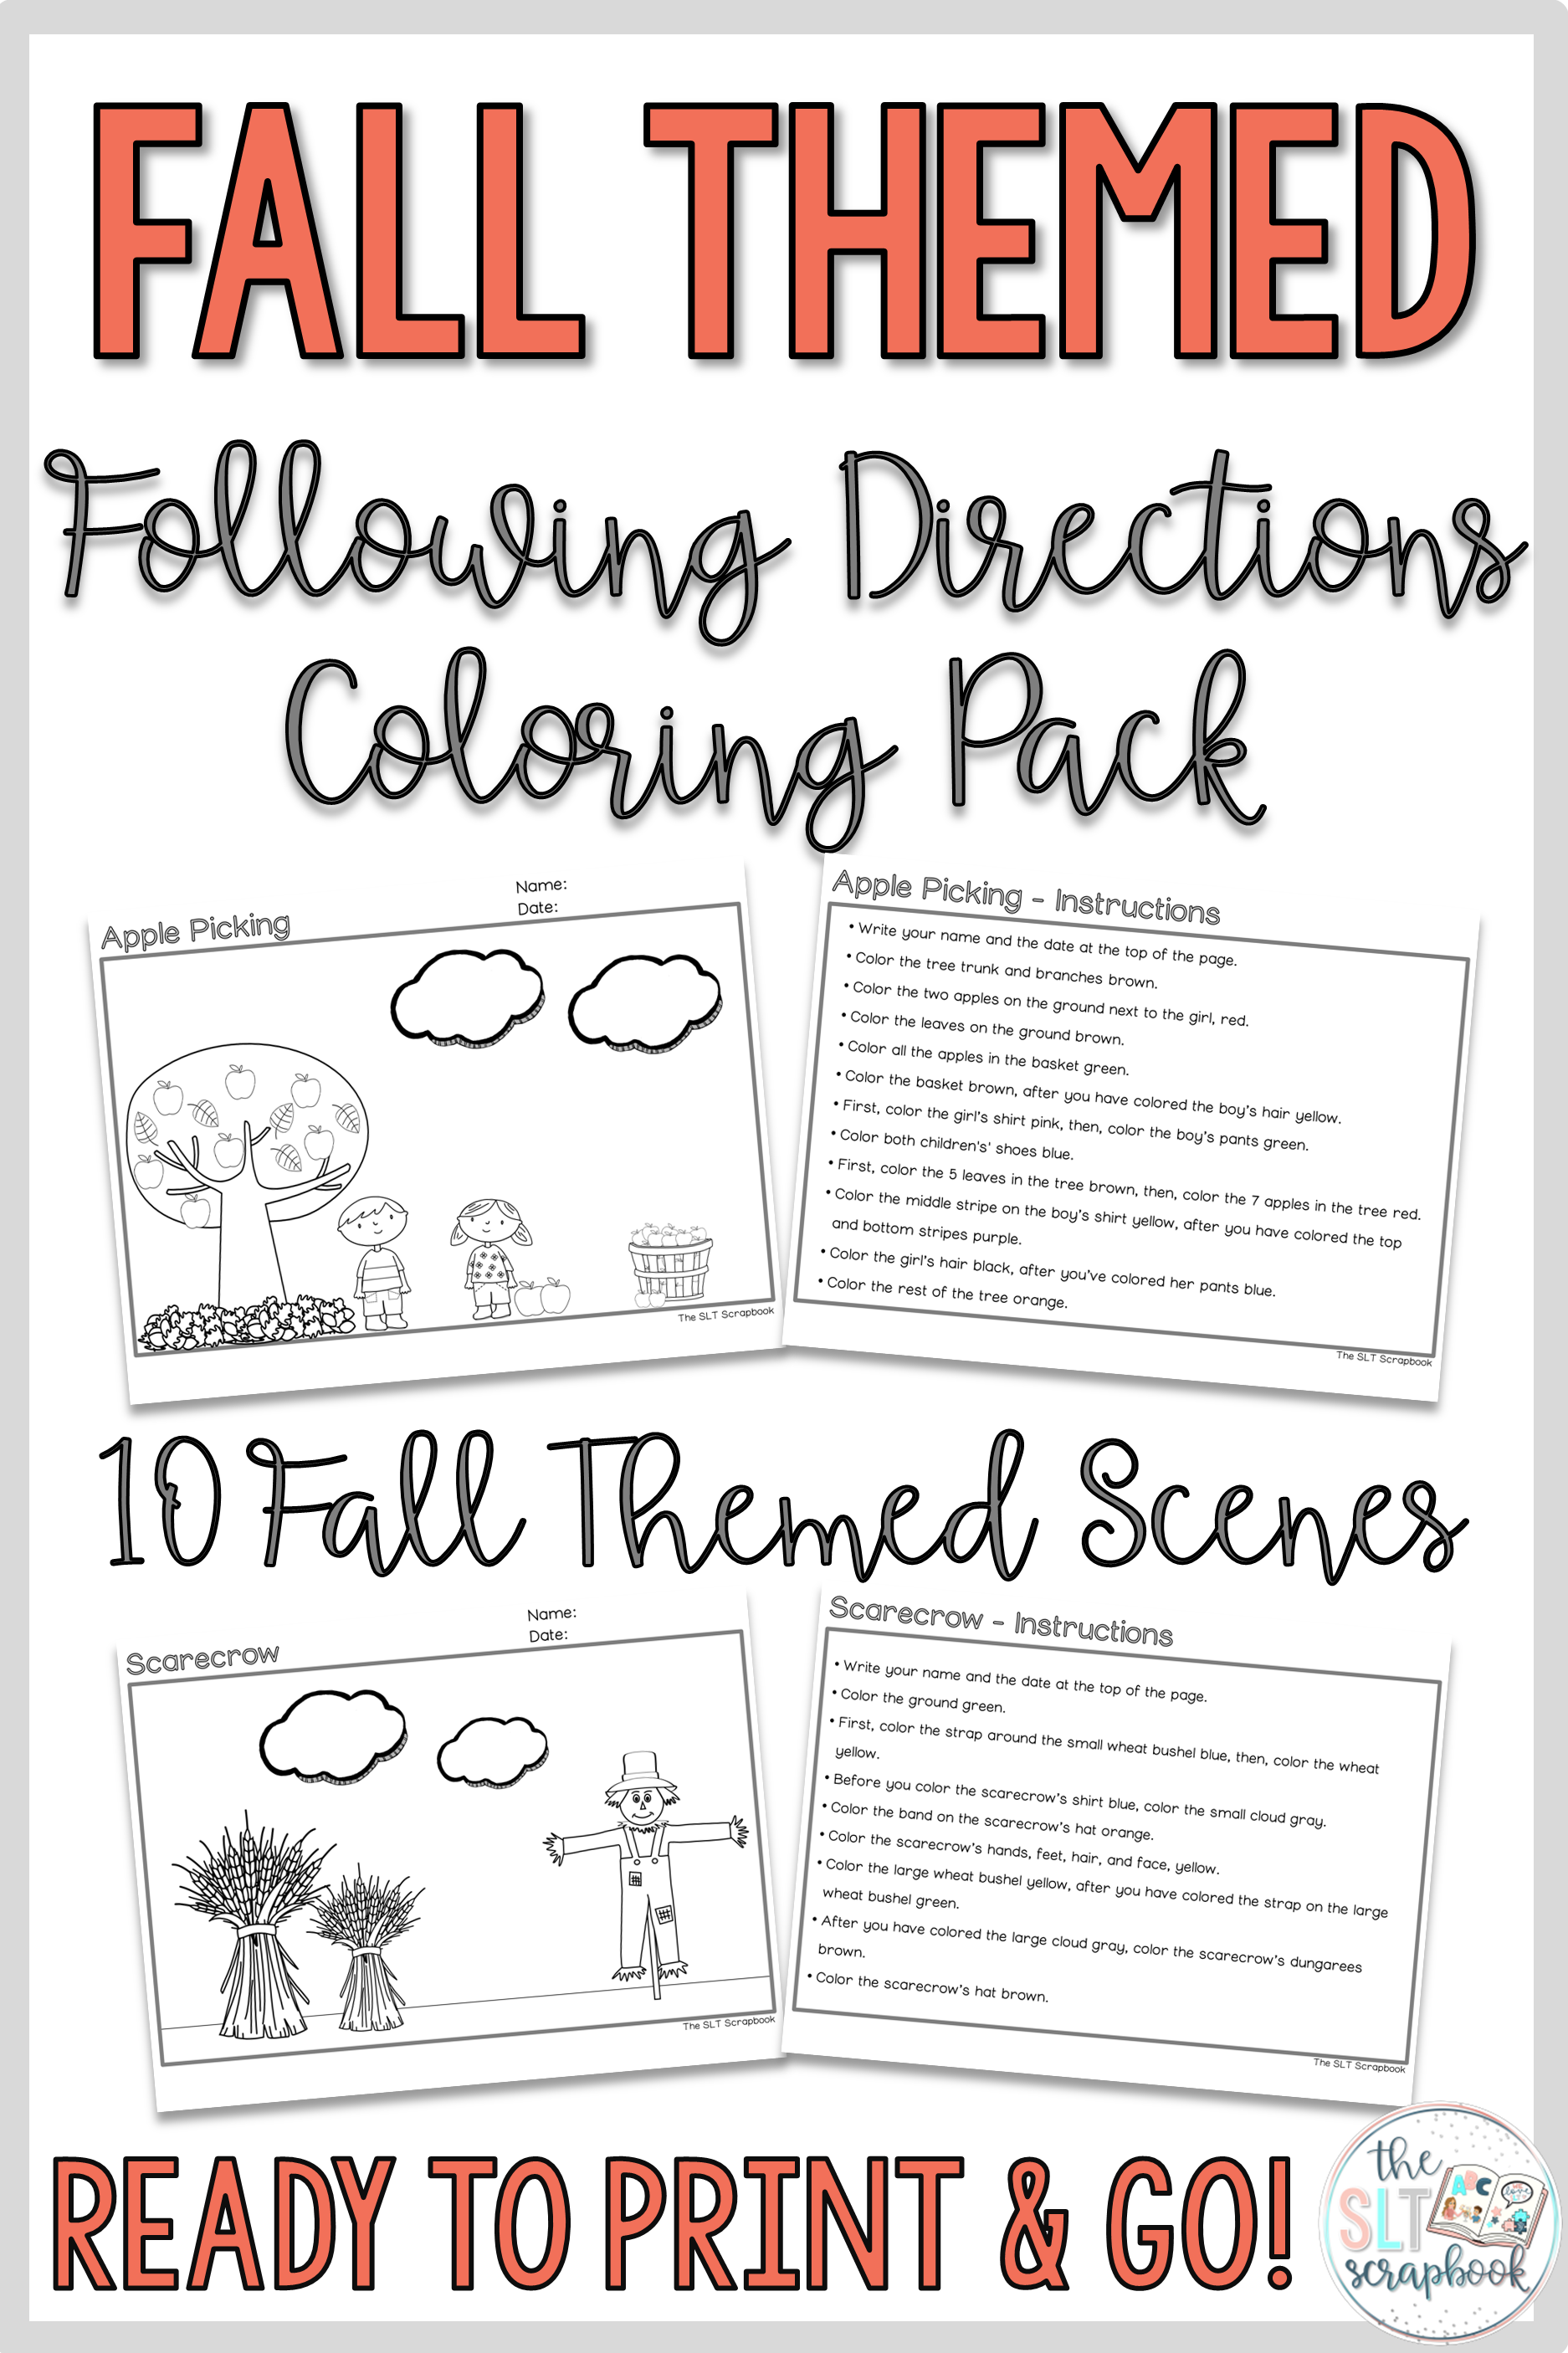 Fall Themed Following Directions Coloring Pack Mixed